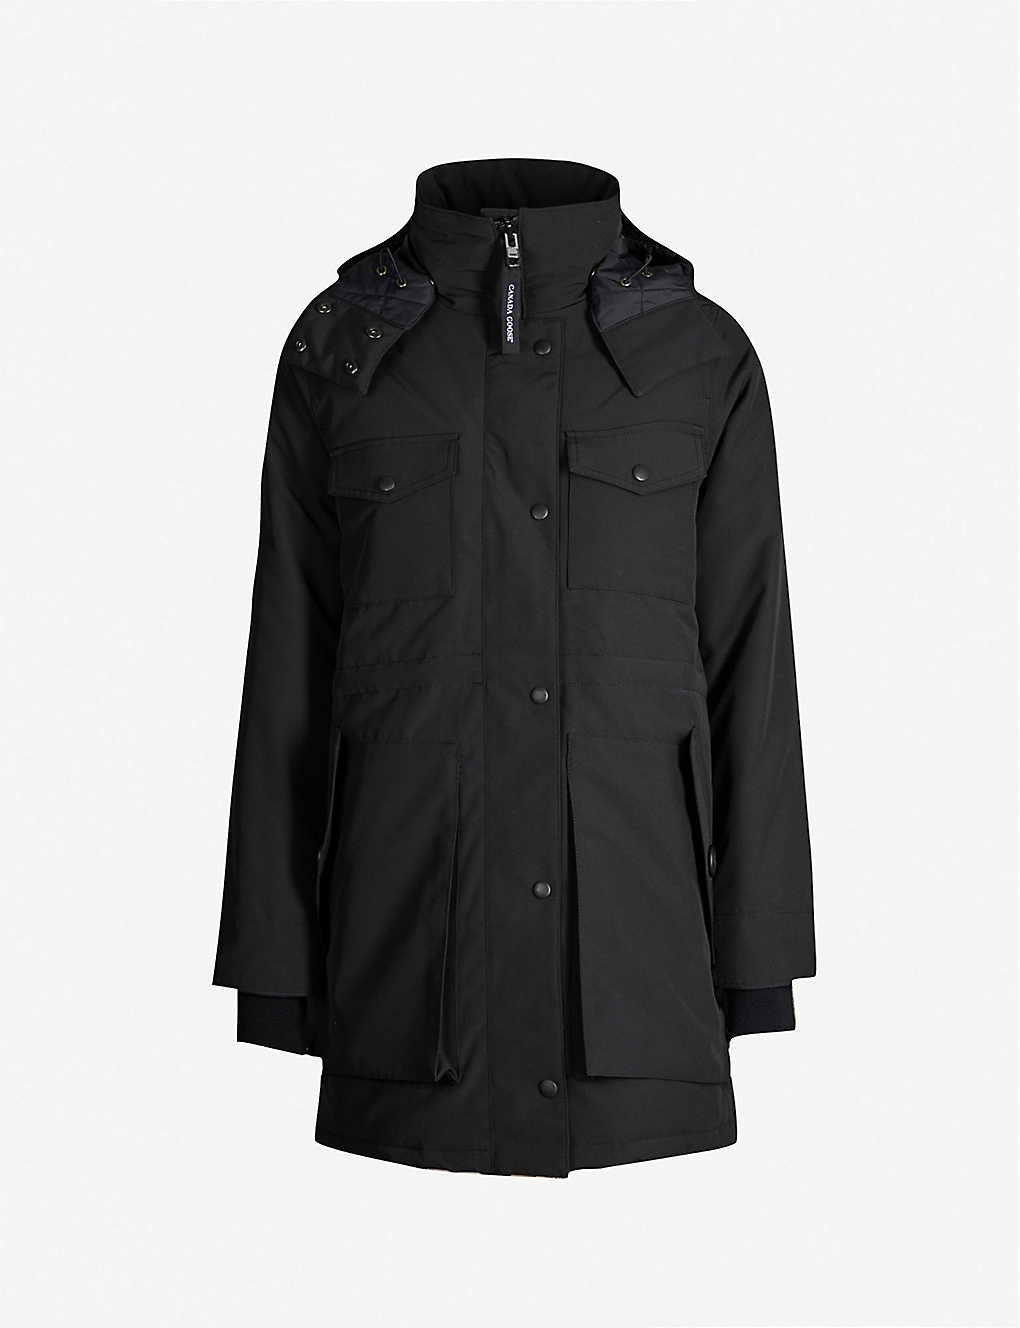 79df6507b39 CANADA GOOSE - Gabriola feather and shell-down parka coat | Selfridges.com